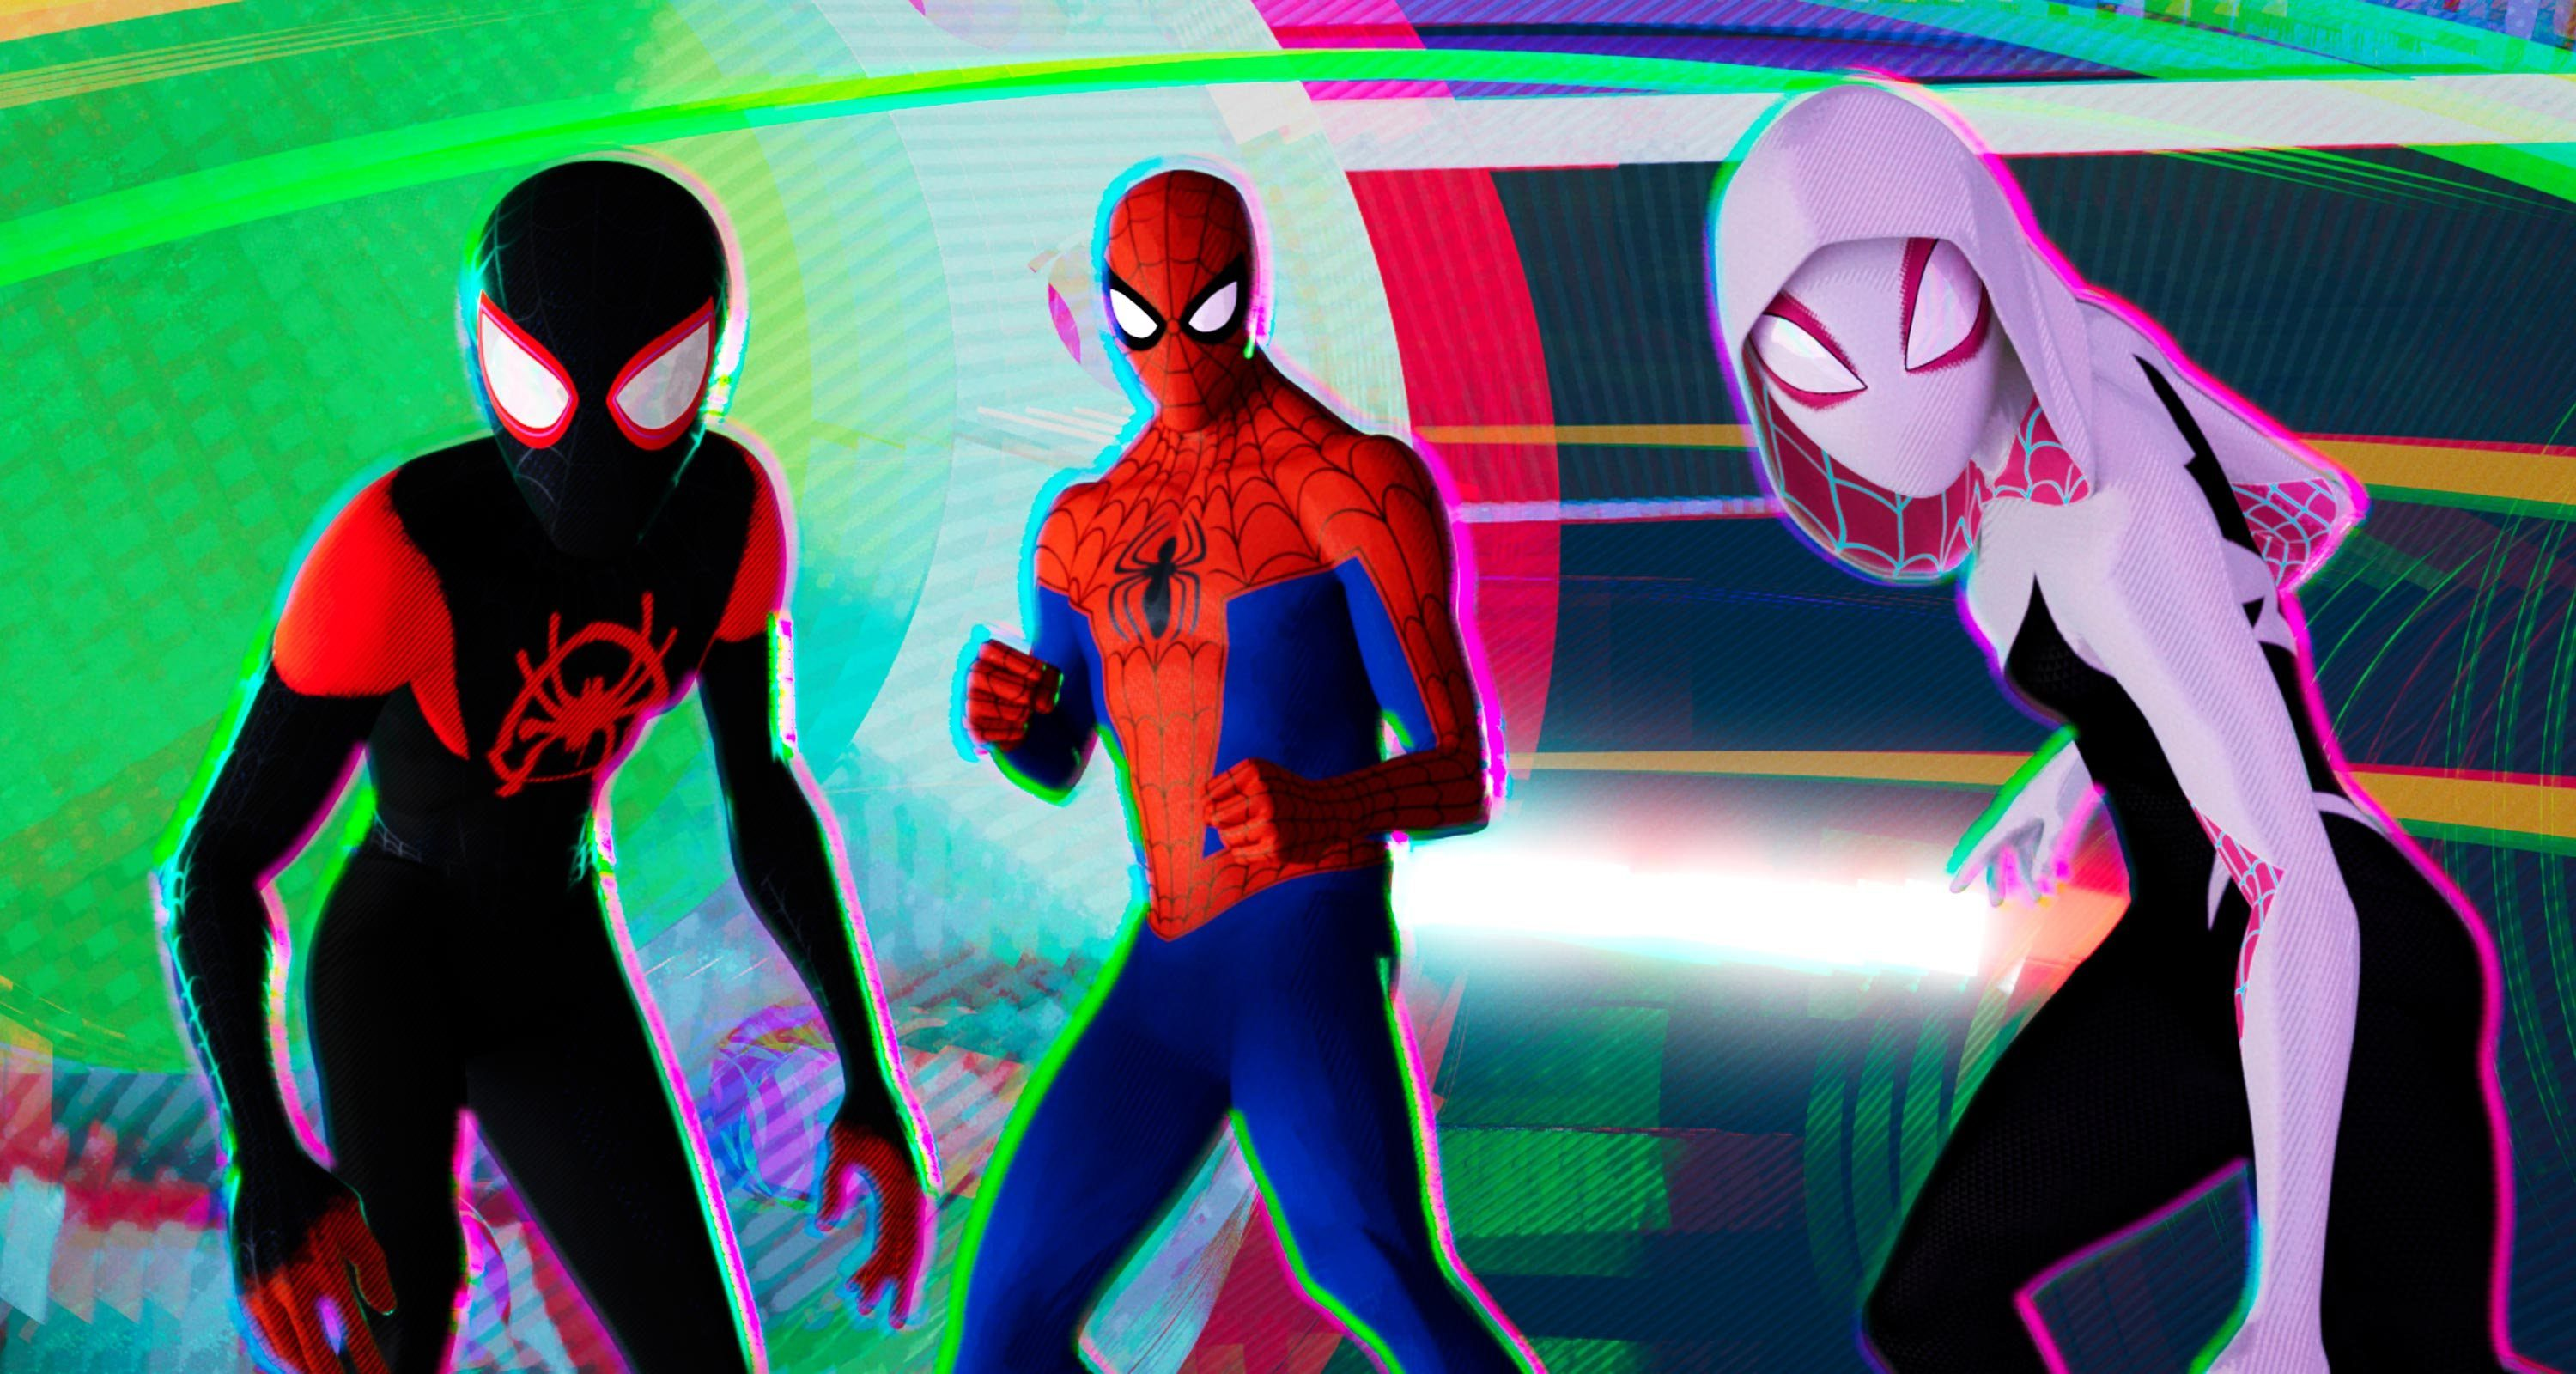 'Spider-Verse' Producers Phil Lord and Chris Miller Announce Next Project